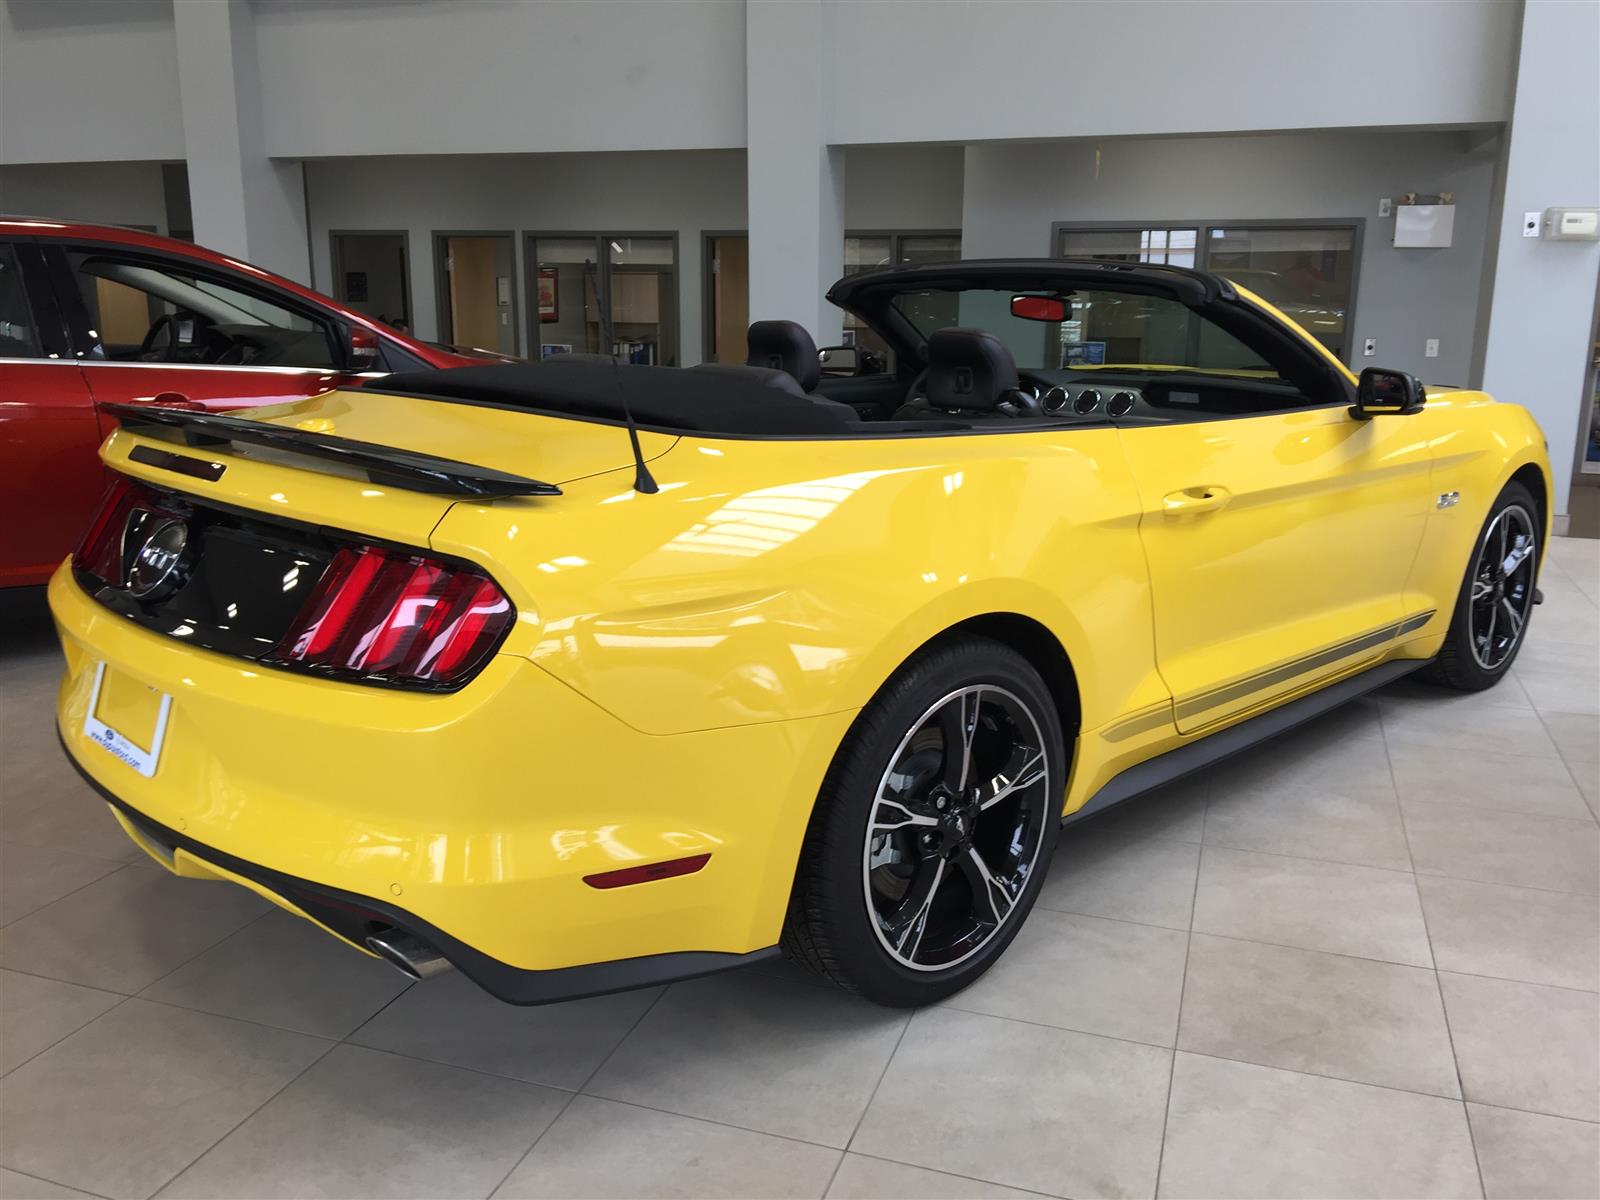 2017 ford mustang gt convertible yellow 5 0l v8 dohc 32v dupuis